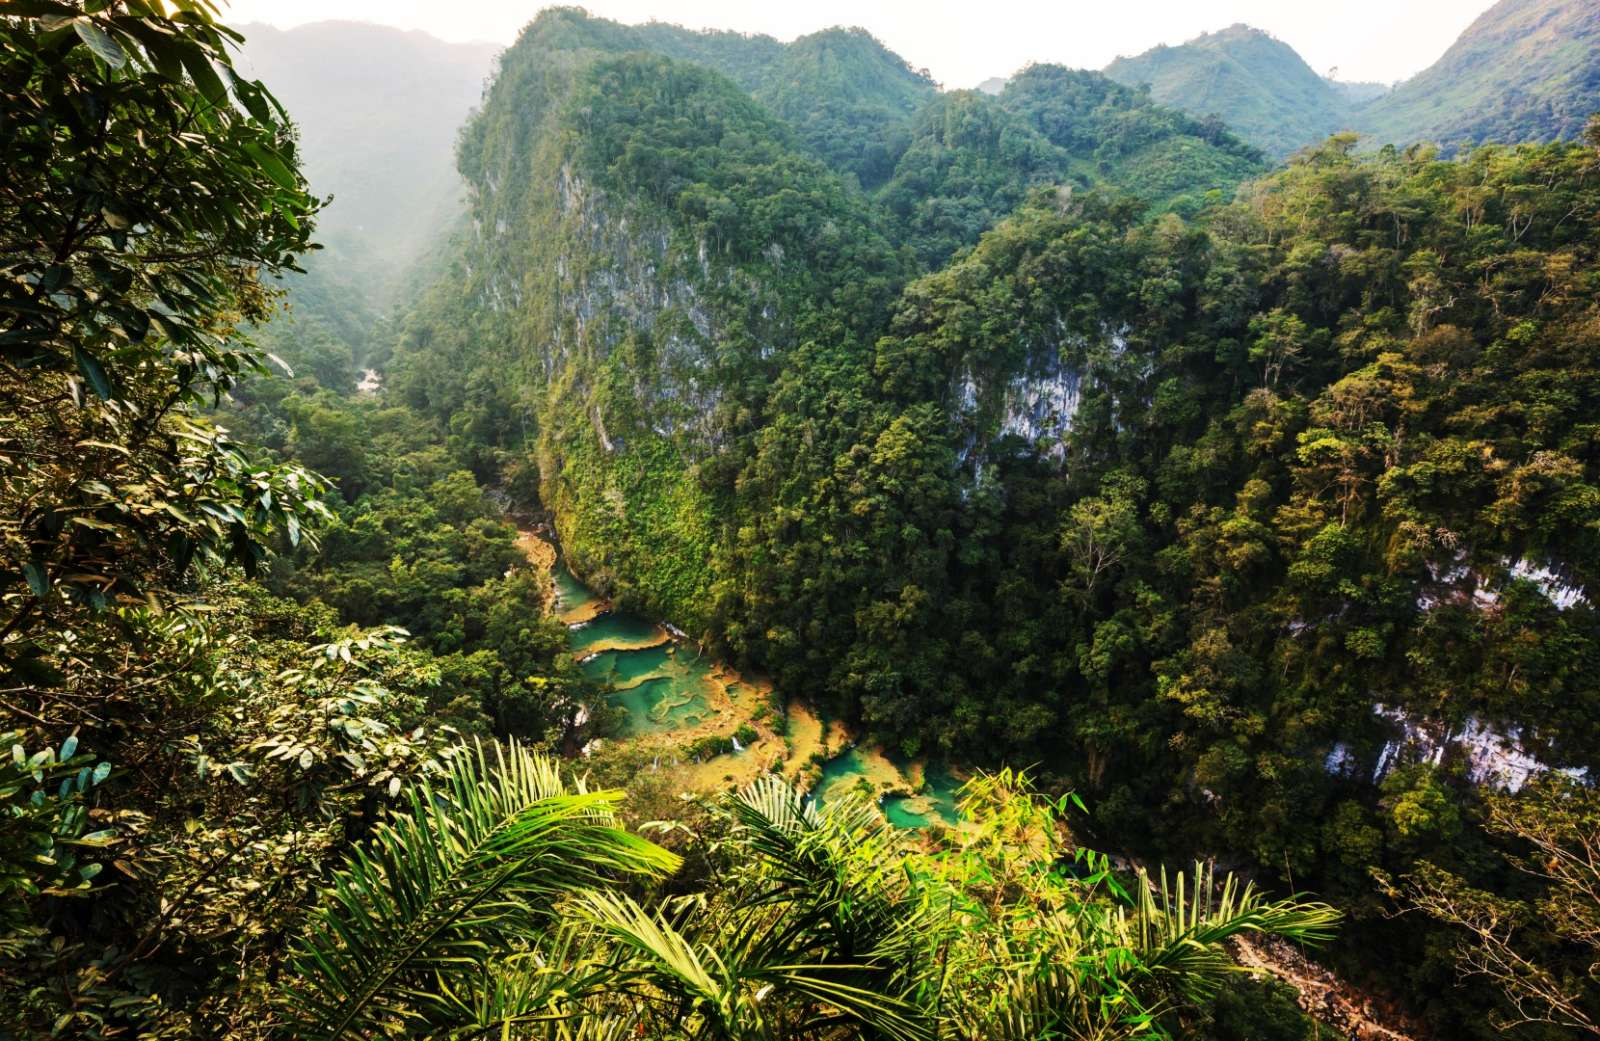 Aerial view of Semuc Champey valley gorge in Guatemala